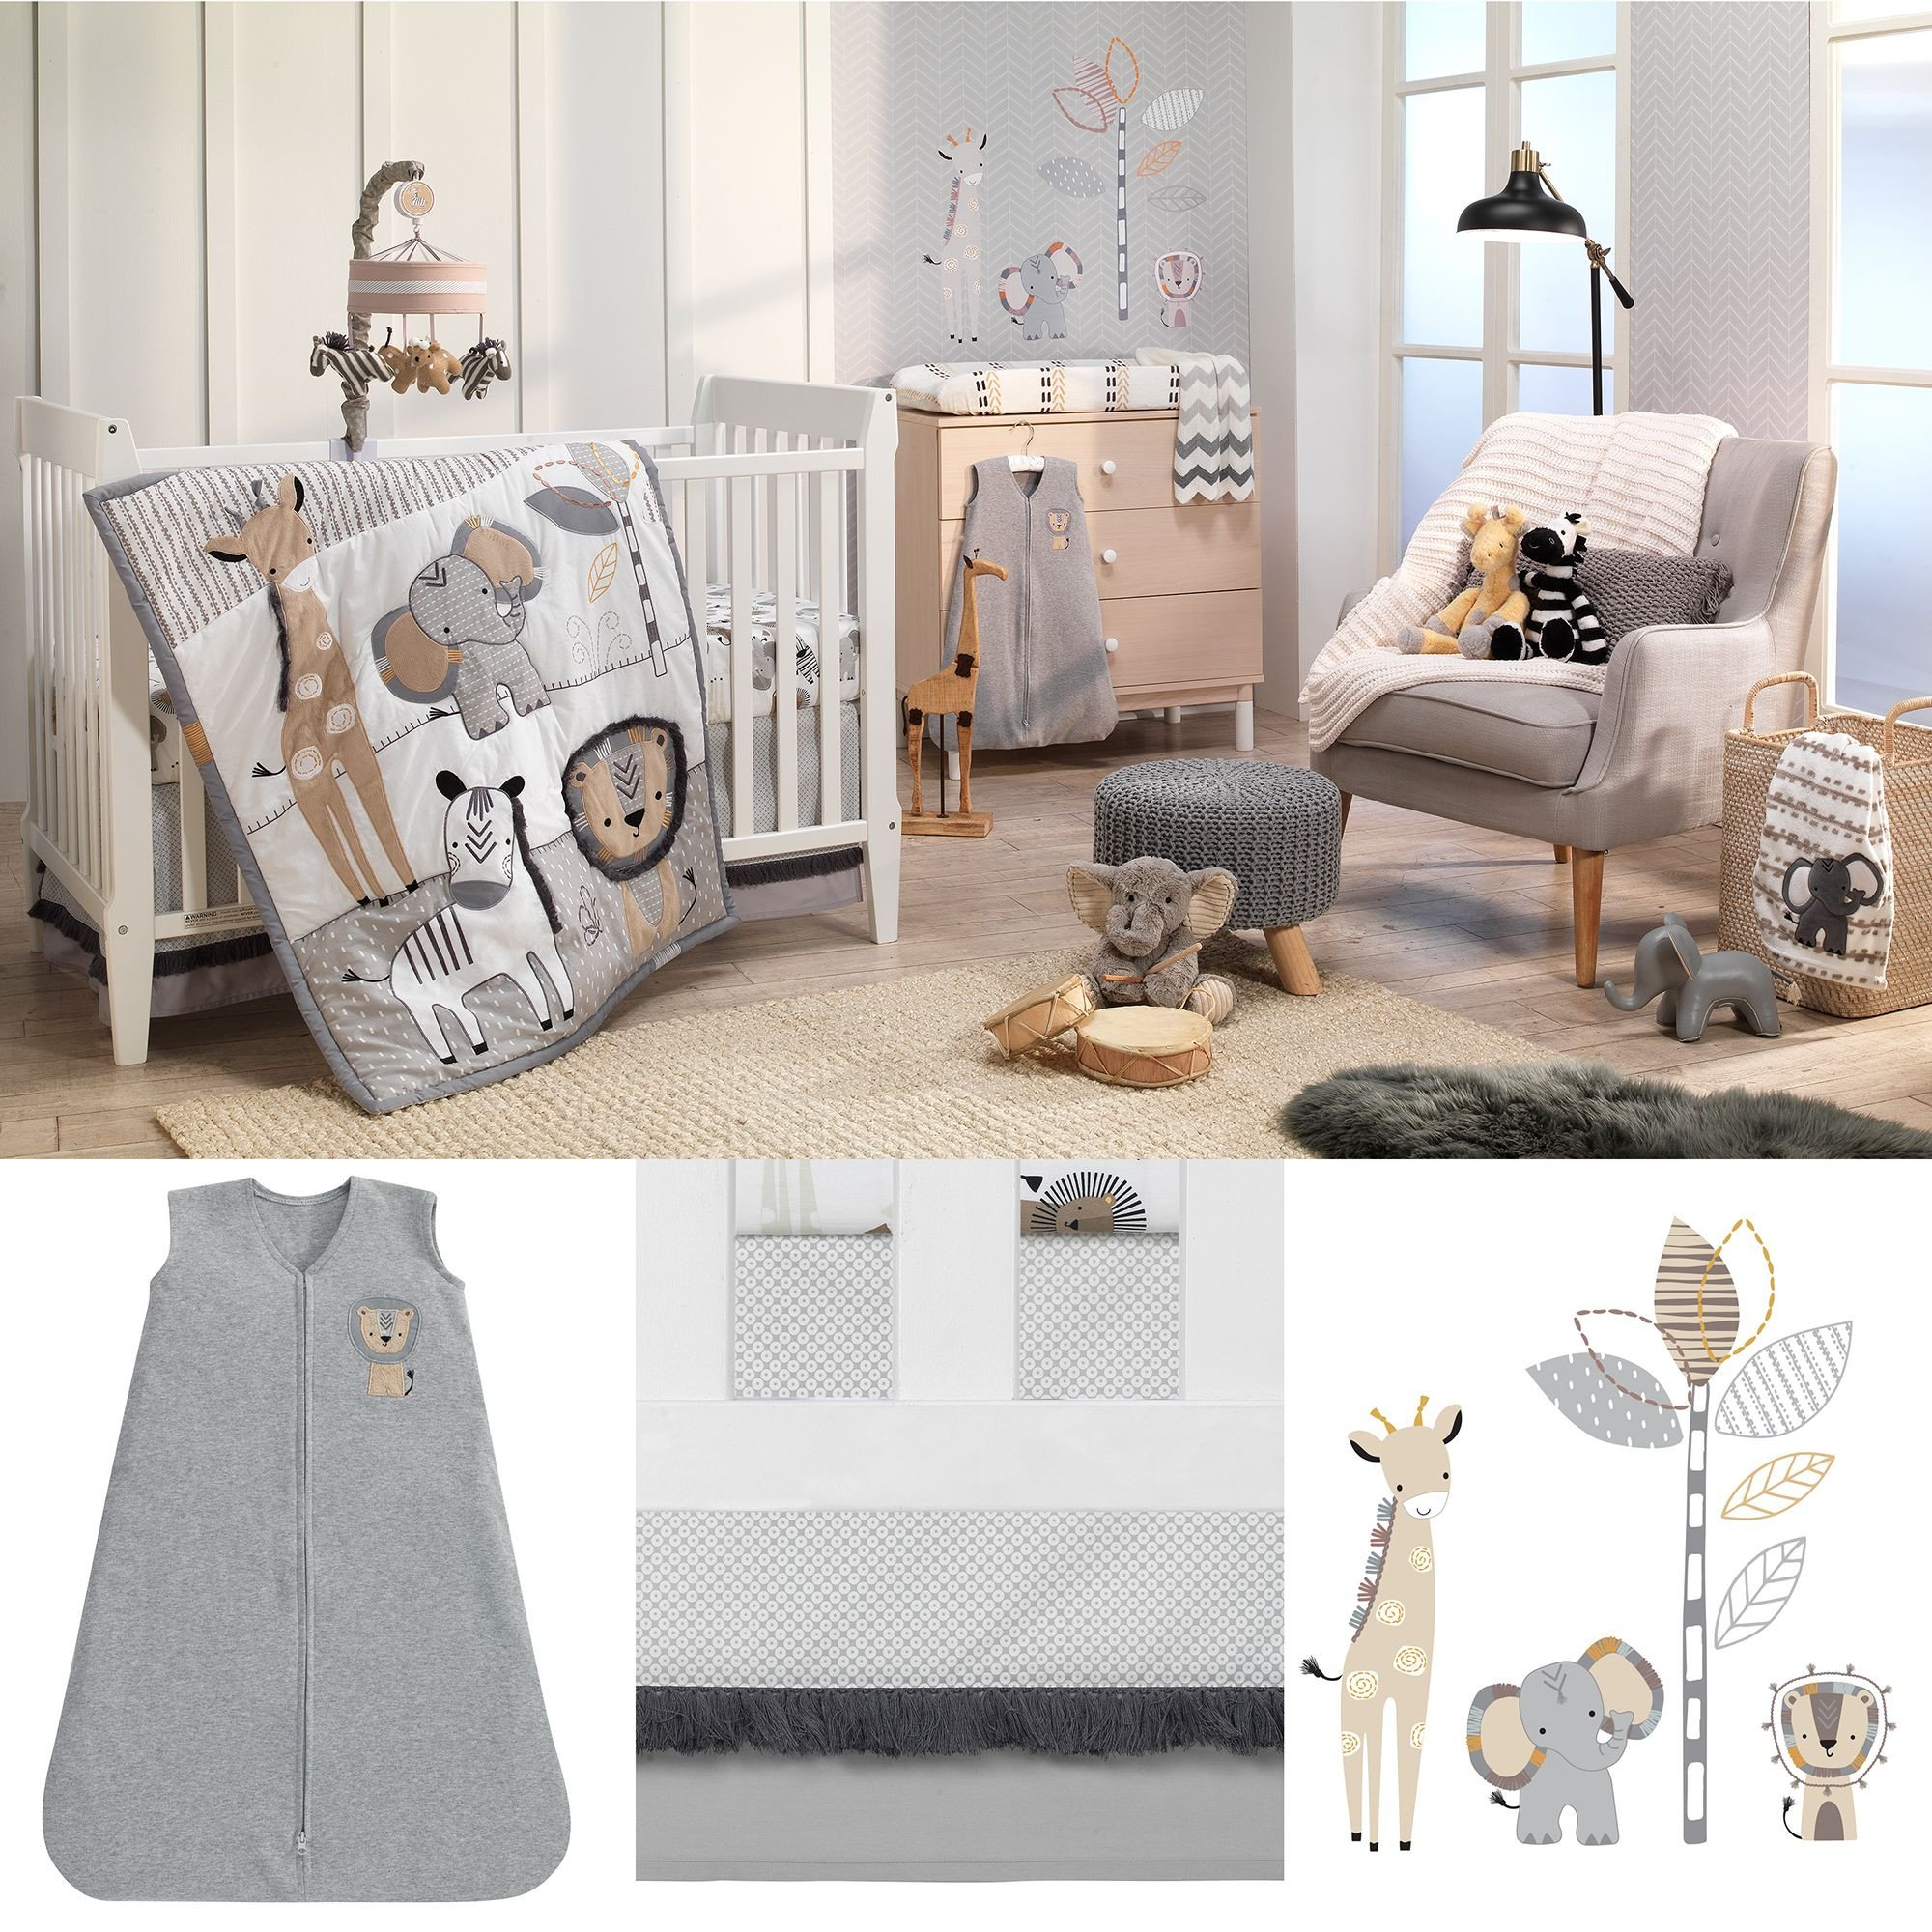 Baby Boy Bedroom theme Awesome Jungle Safari Gray Tan White Nursery 6 Piece Baby Crib